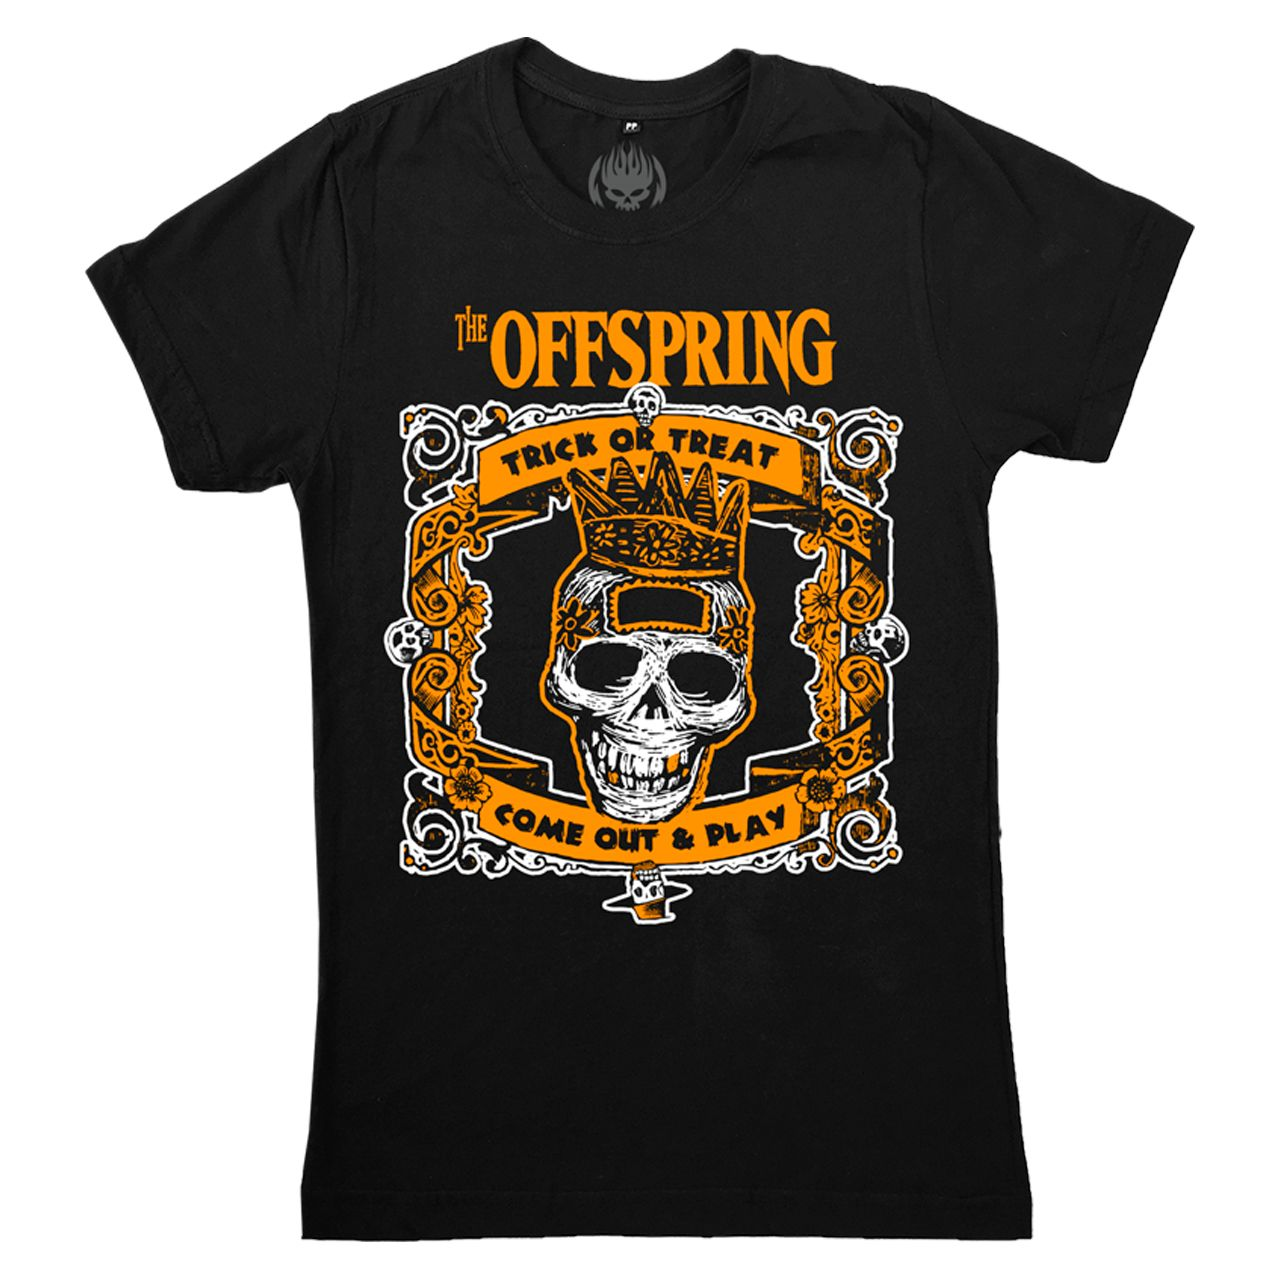 The Offspring - Trick Or Treat Tour 2019